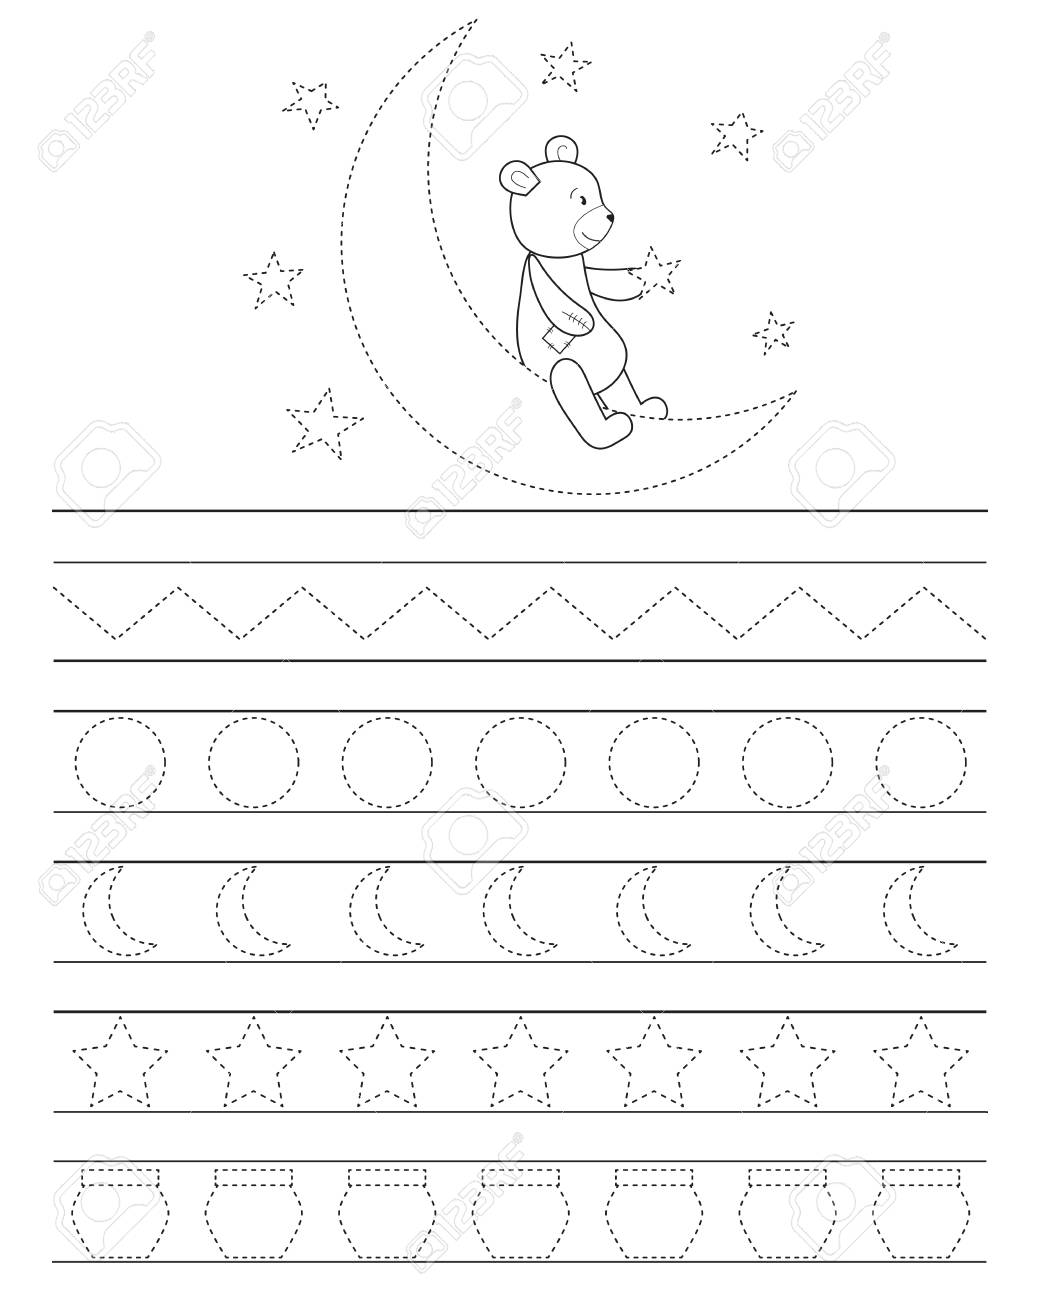 Handwriting Practice Sheet For Kids Good Night Teddy Bear